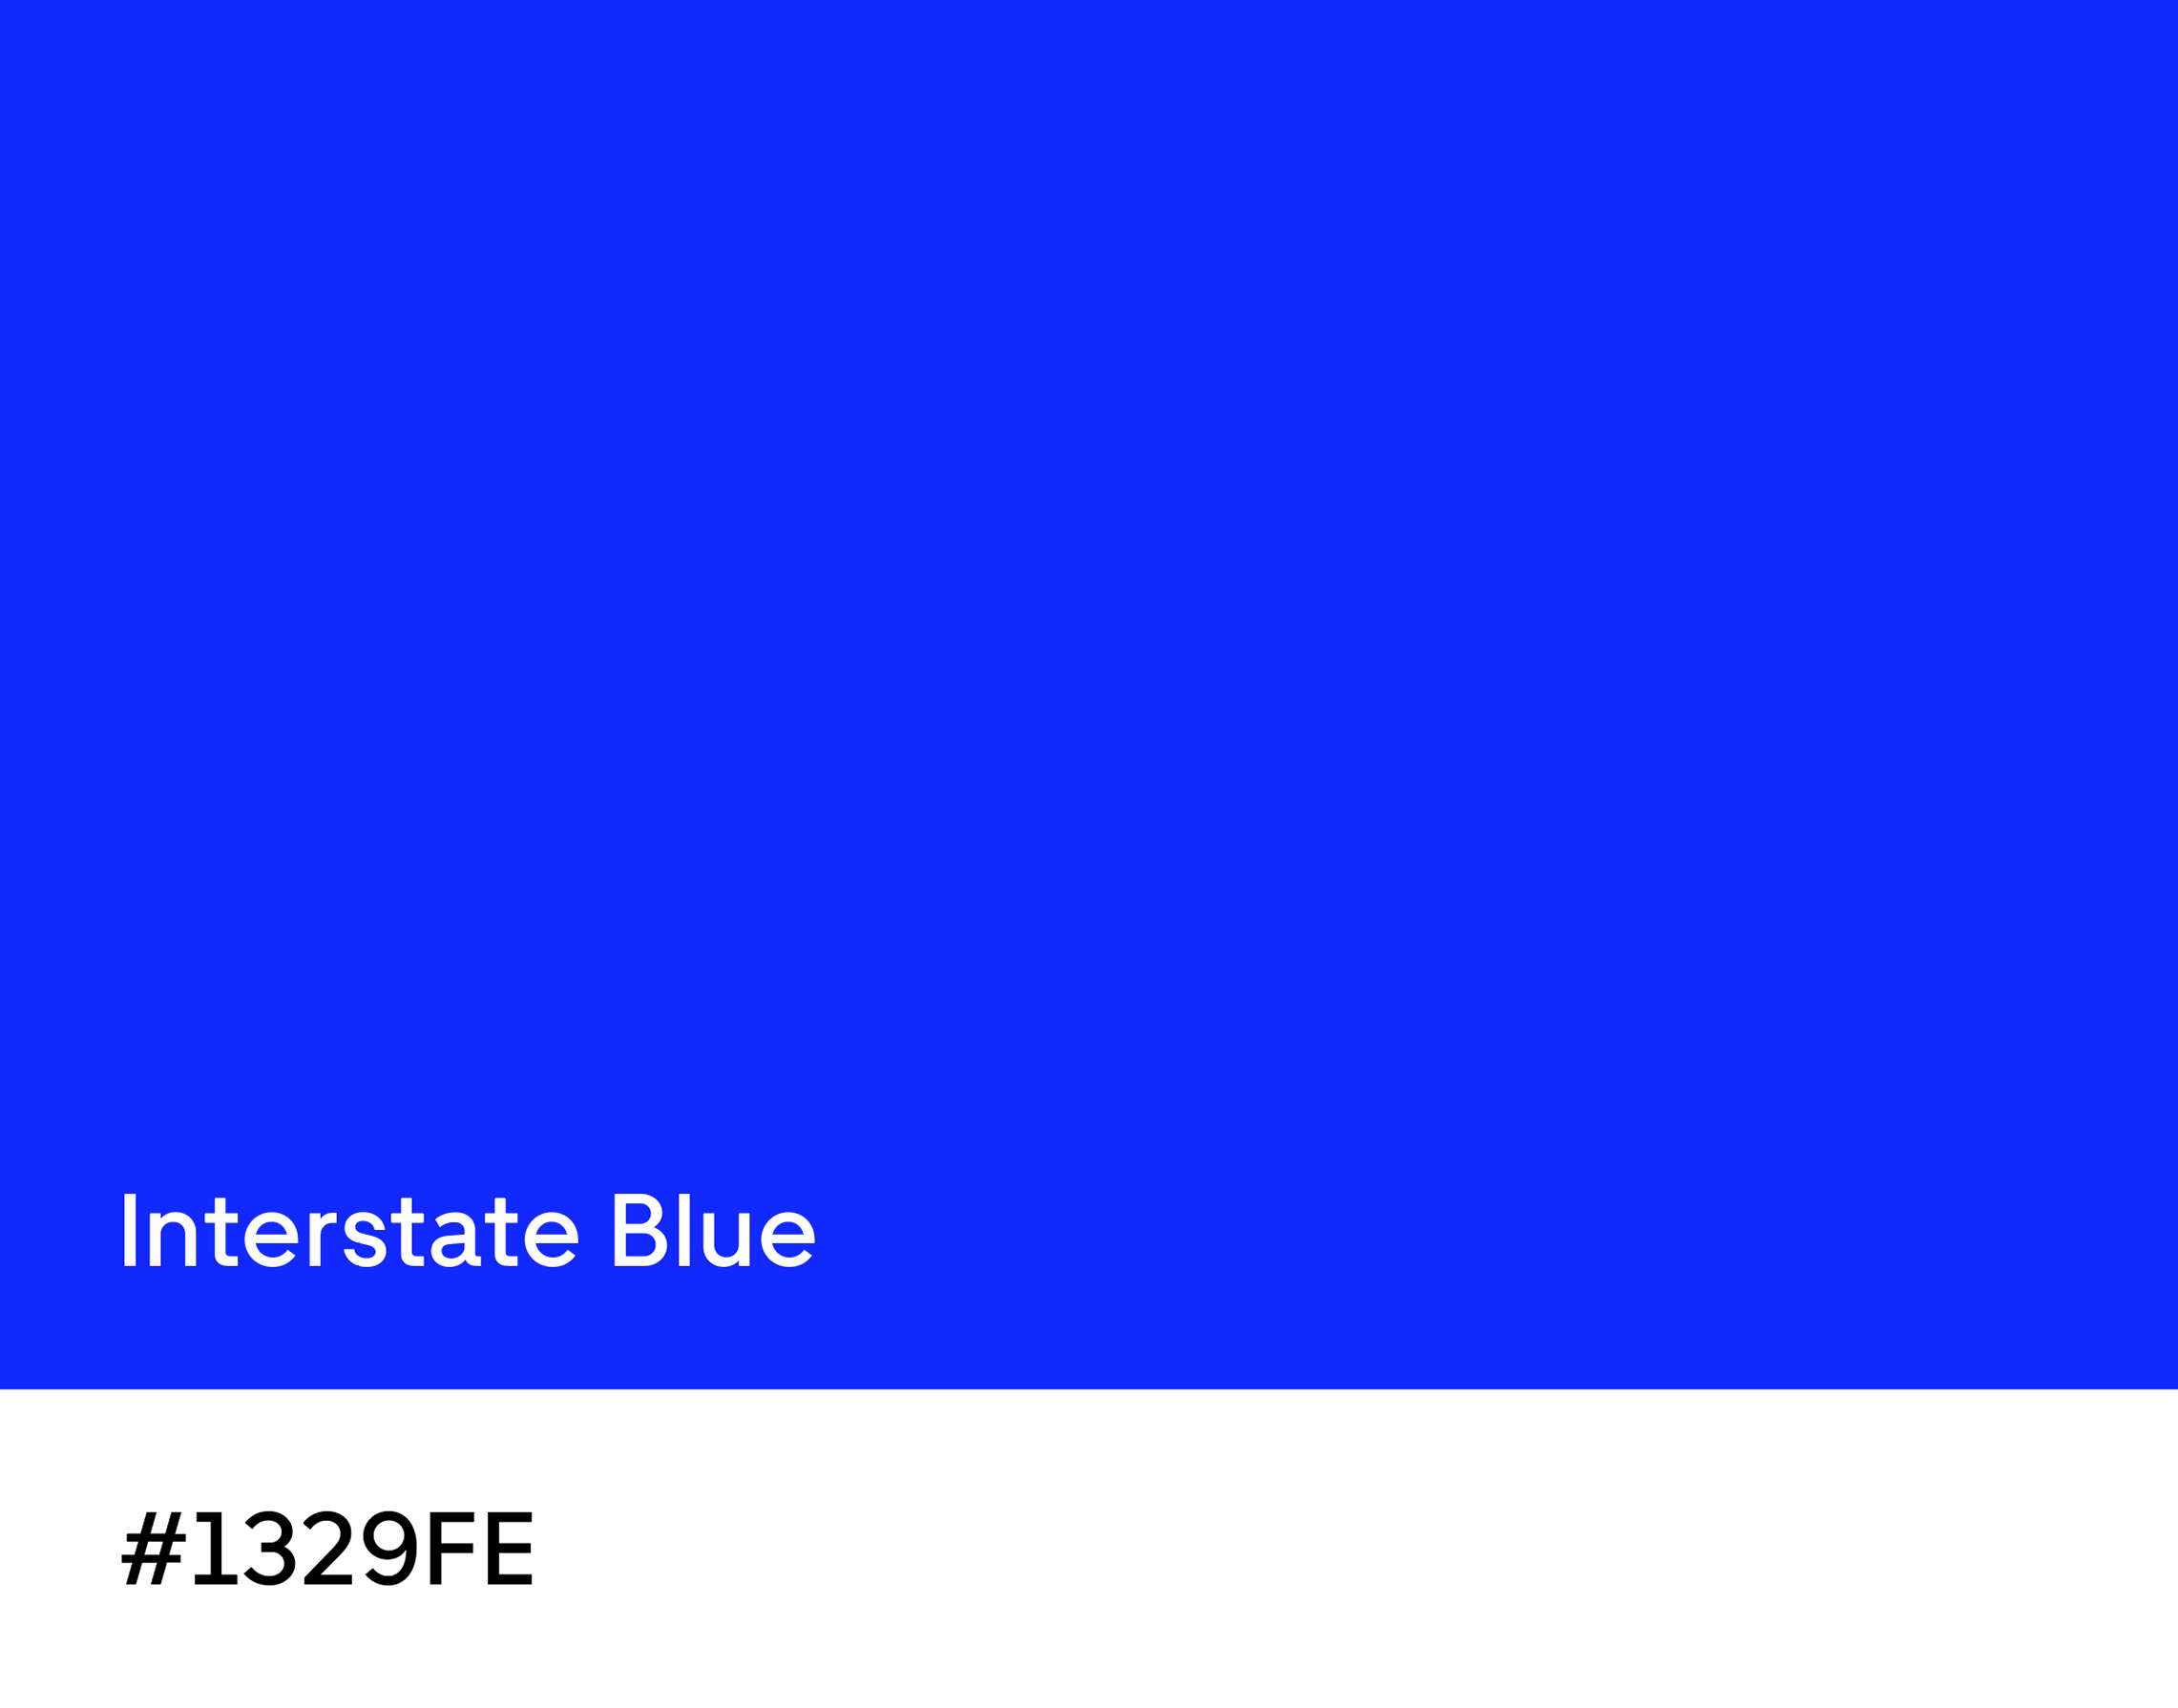 Working with Wolff Olins, we explored every possible color. We came back to blue, taking our inspiration from interstate signs and the connectivity they represent.